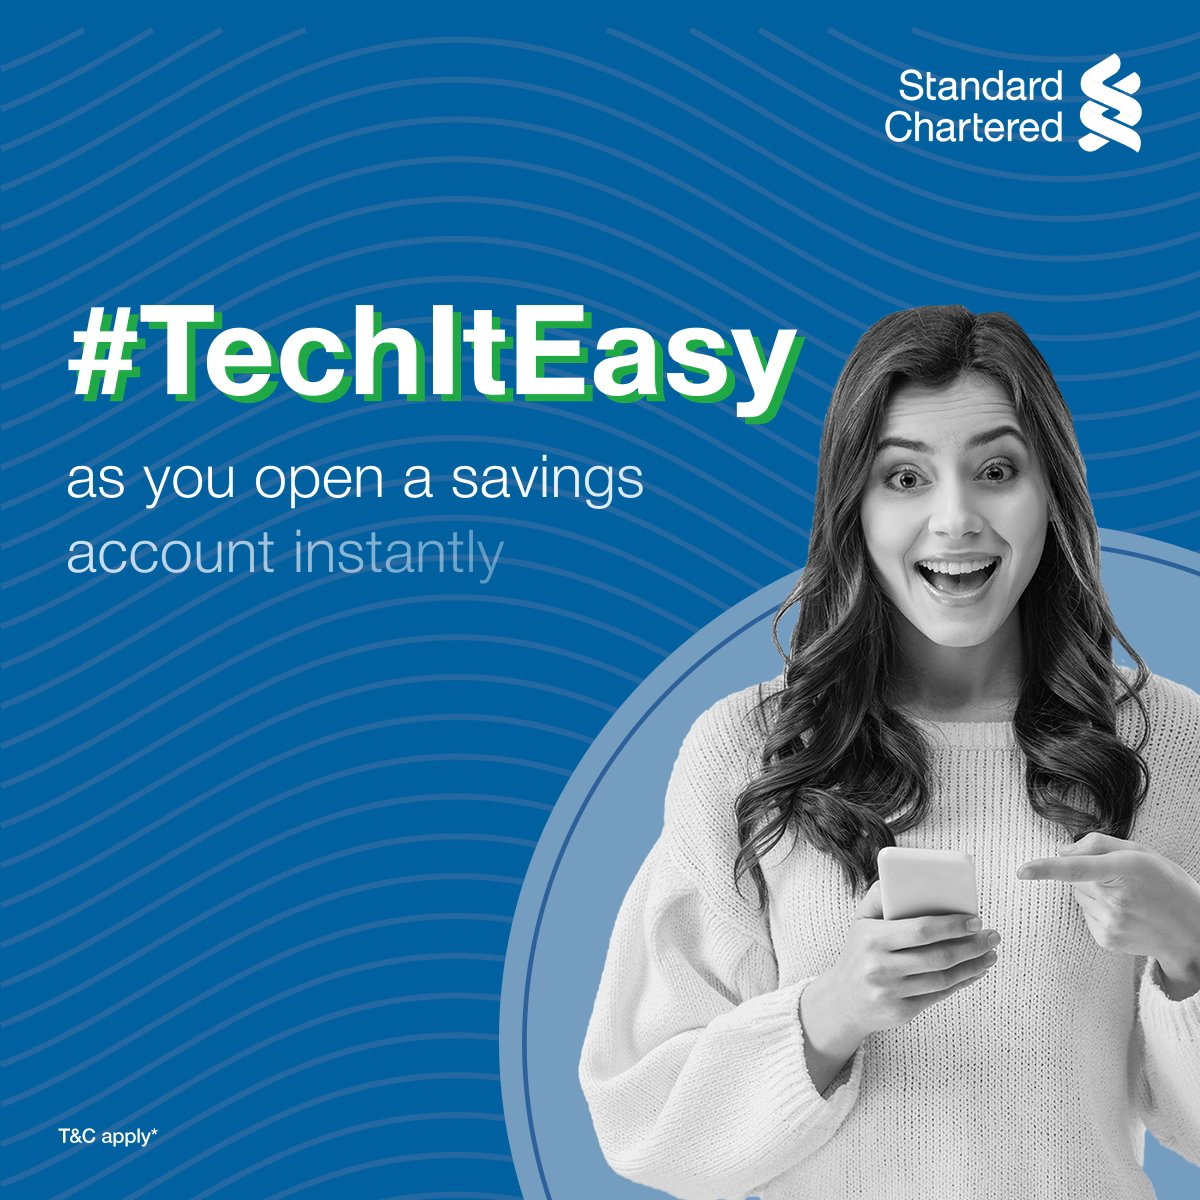 Can you stay on top of your savings & #TechItEasy at the same time? You can, with Standard Chartered savings account! Simply fill the online form, verify your documents with Video KYC, and open your account instantly. To know more,